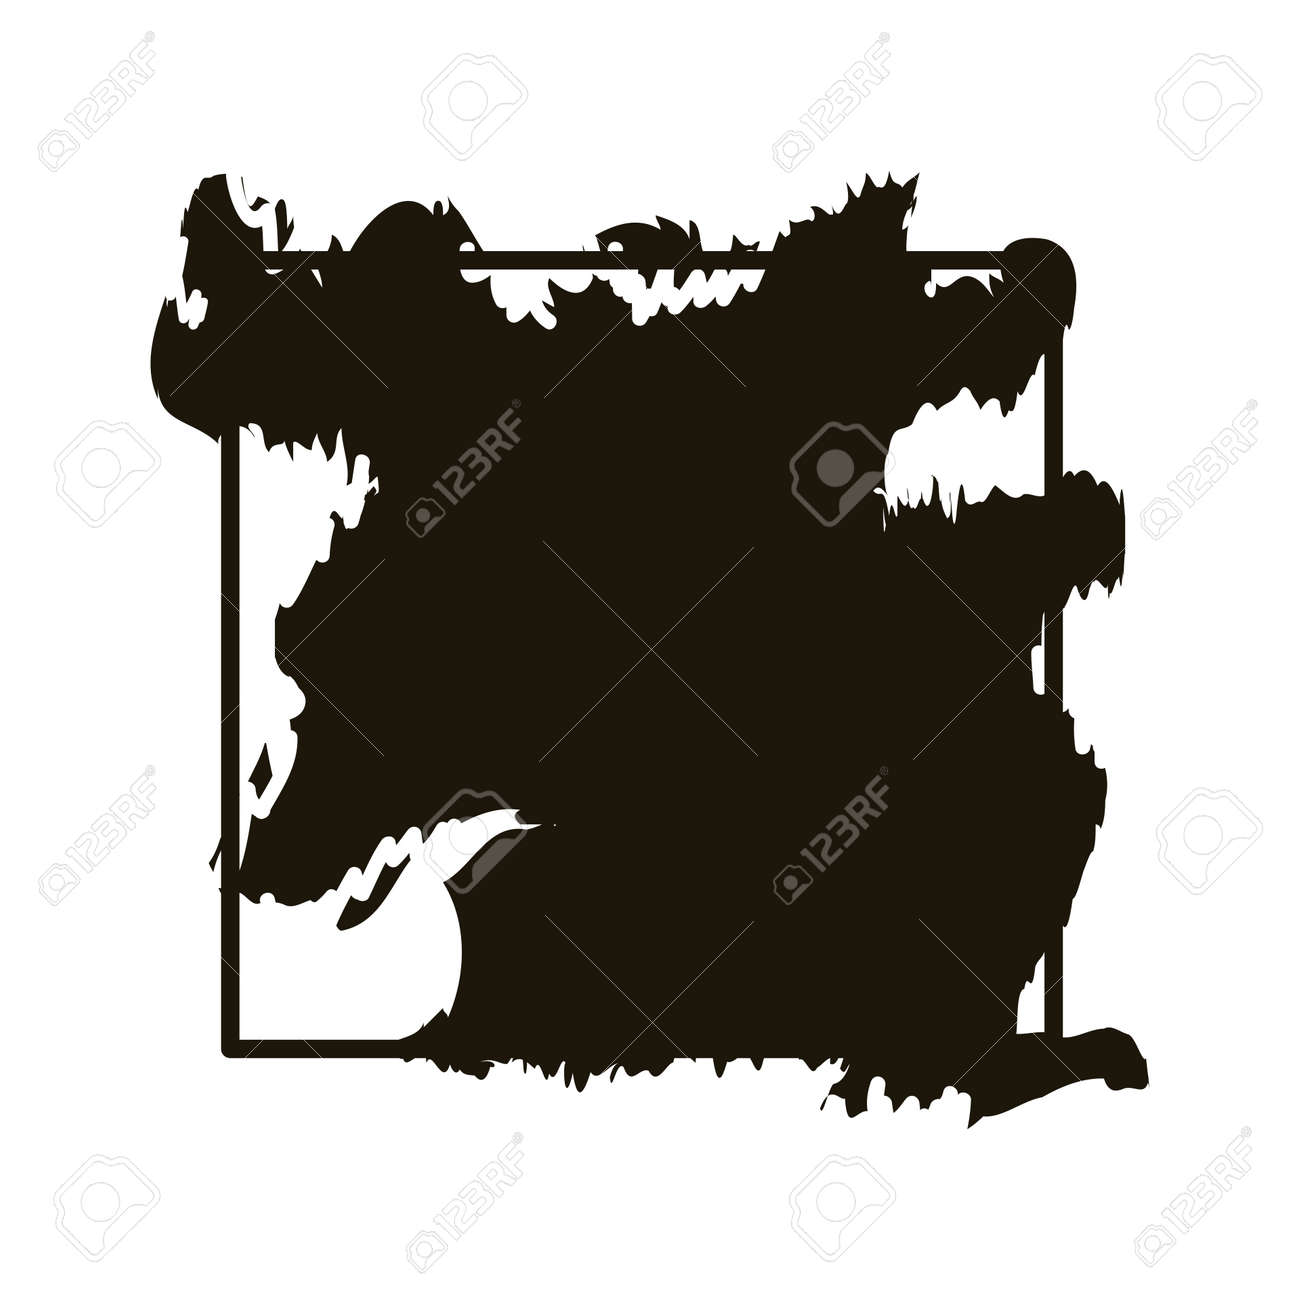 stain in square frame creative design with brush stroke silhouette style vector illustration design - 151204629